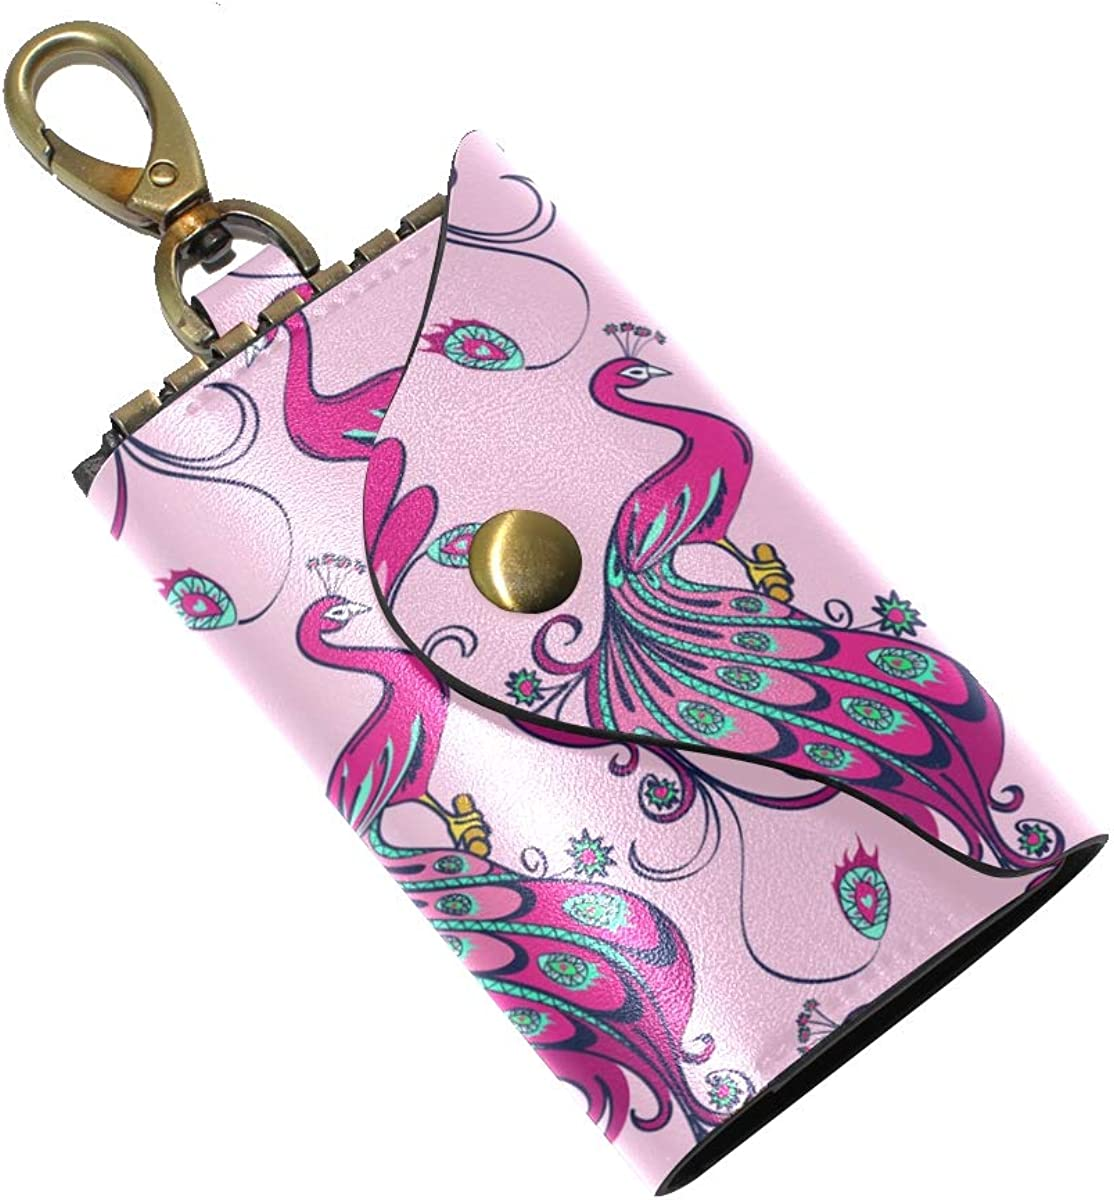 KEAKIA Purple Peacocks Leather Key Case Wallets Tri-fold Key Holder Keychains with 6 Hooks 2 Slot Snap Closure for Men Women